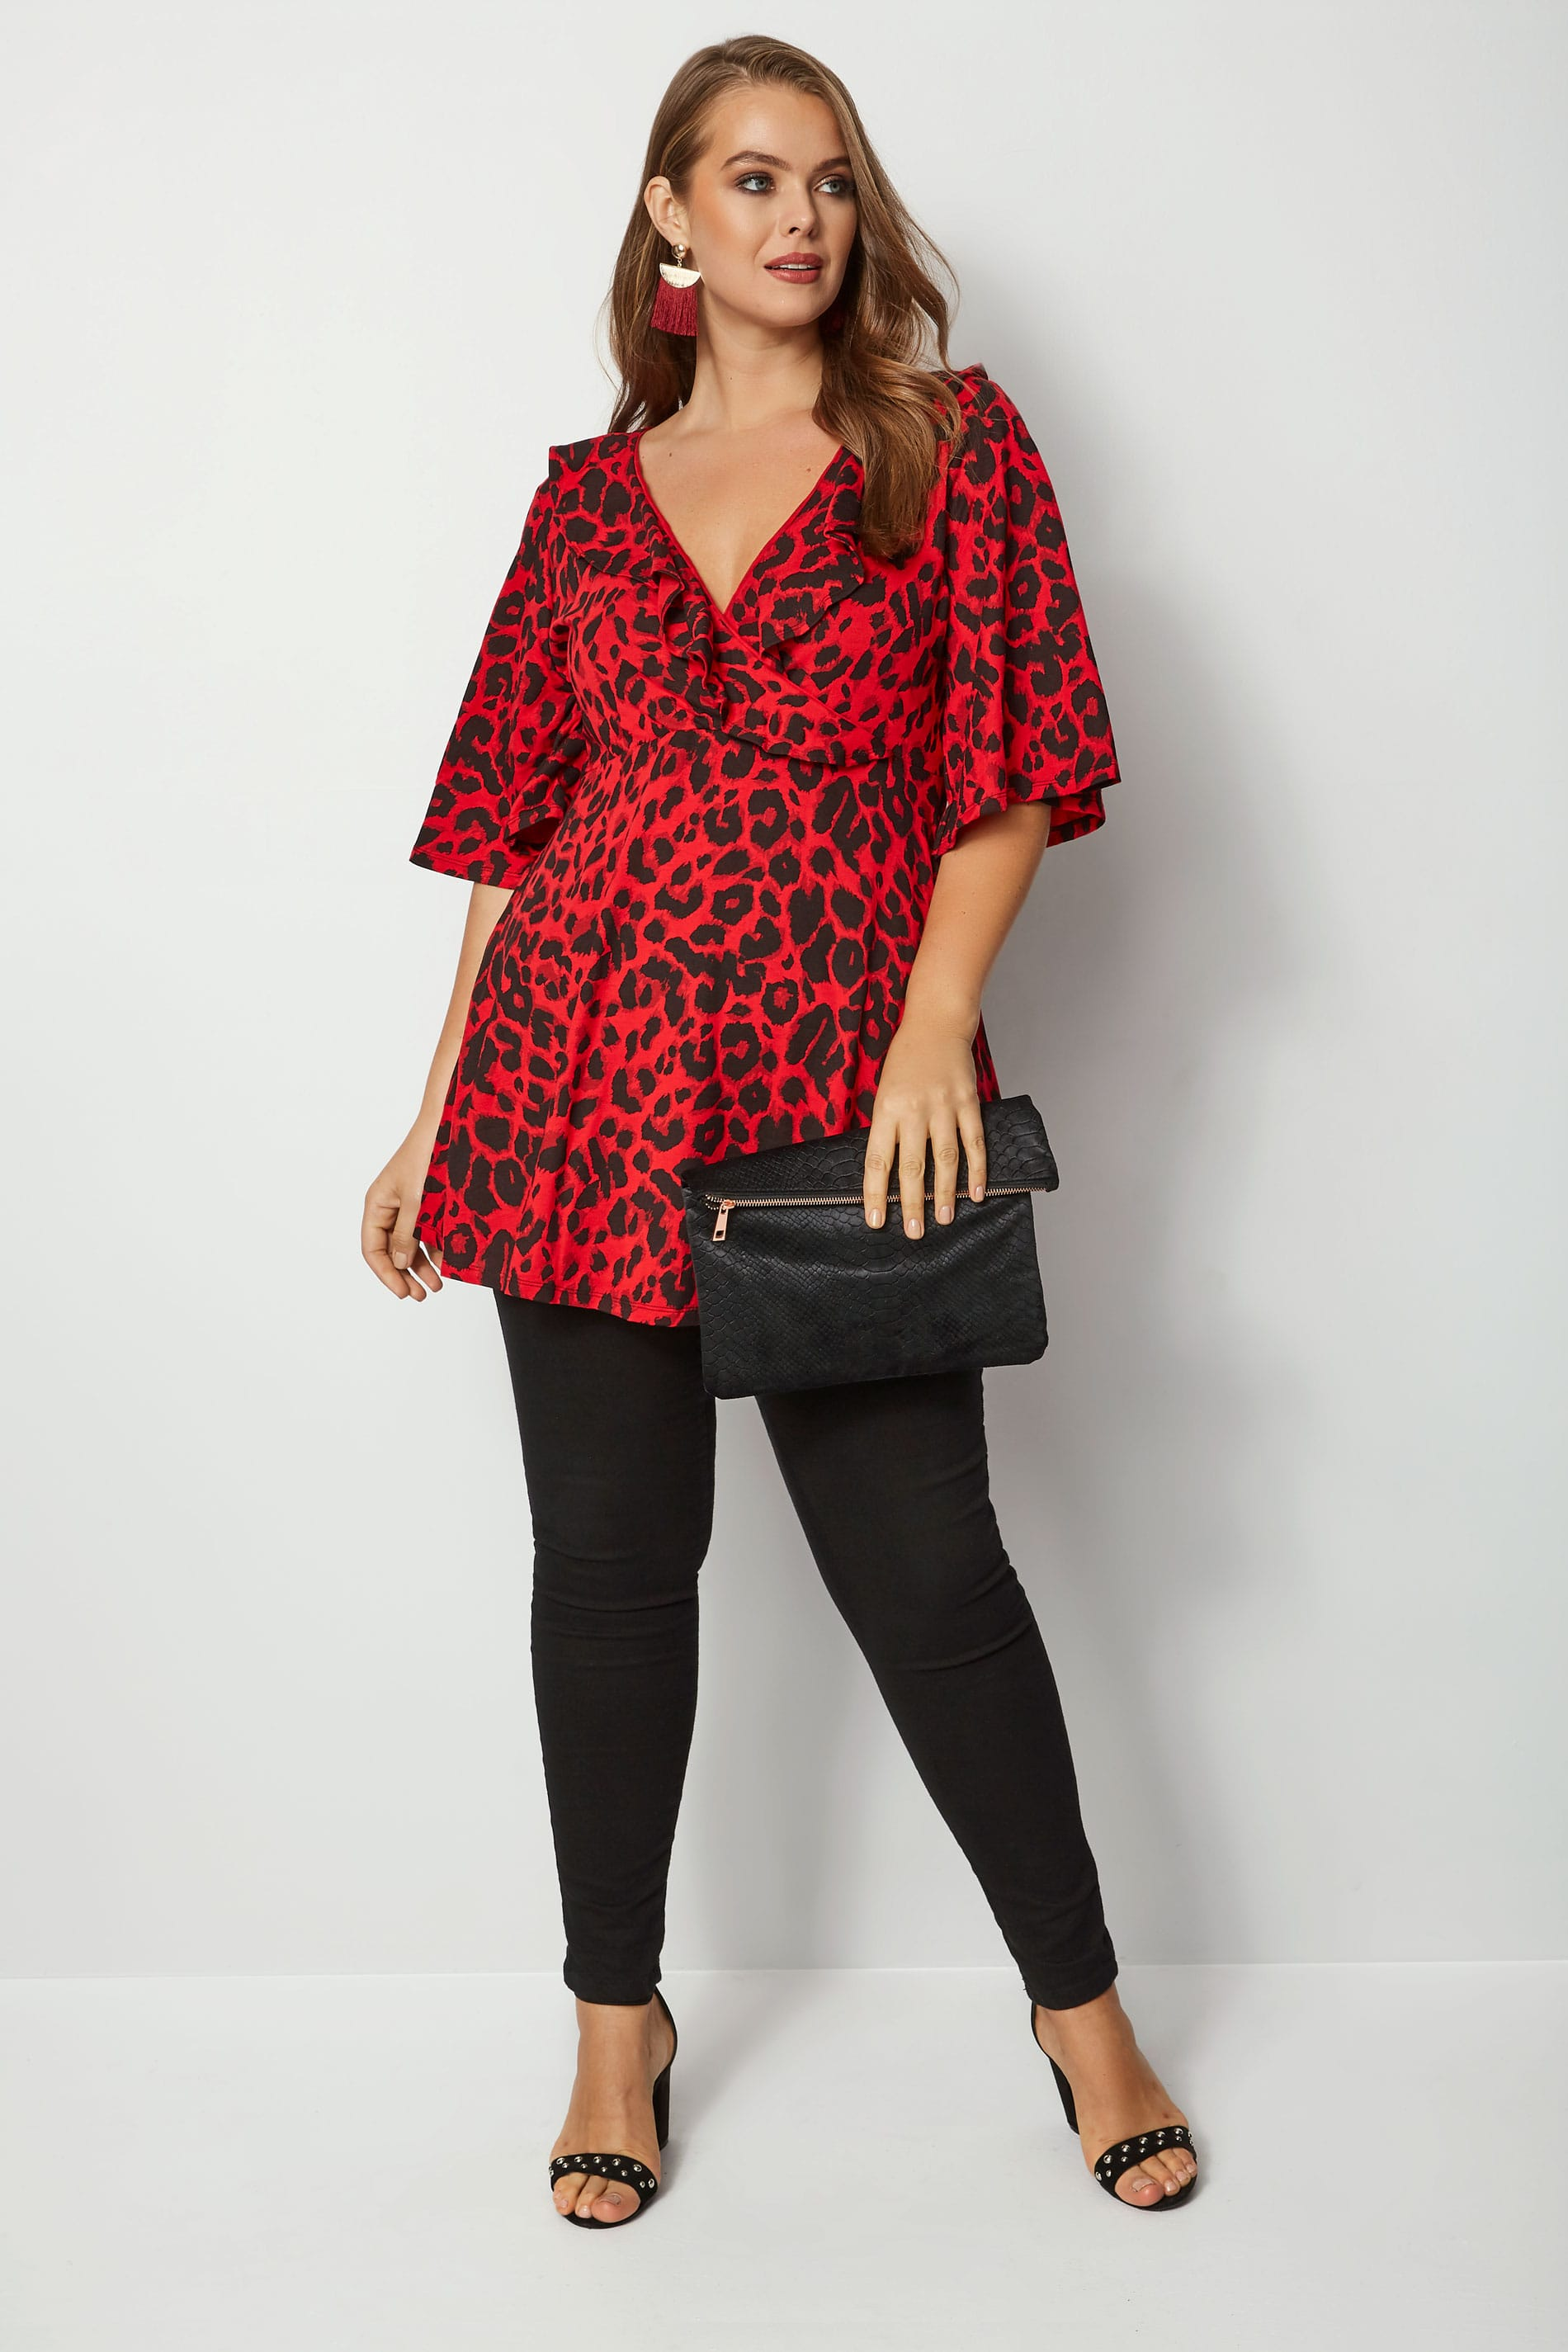 Red Animal Print Frill Wrap Top Plus Size 16 To 36